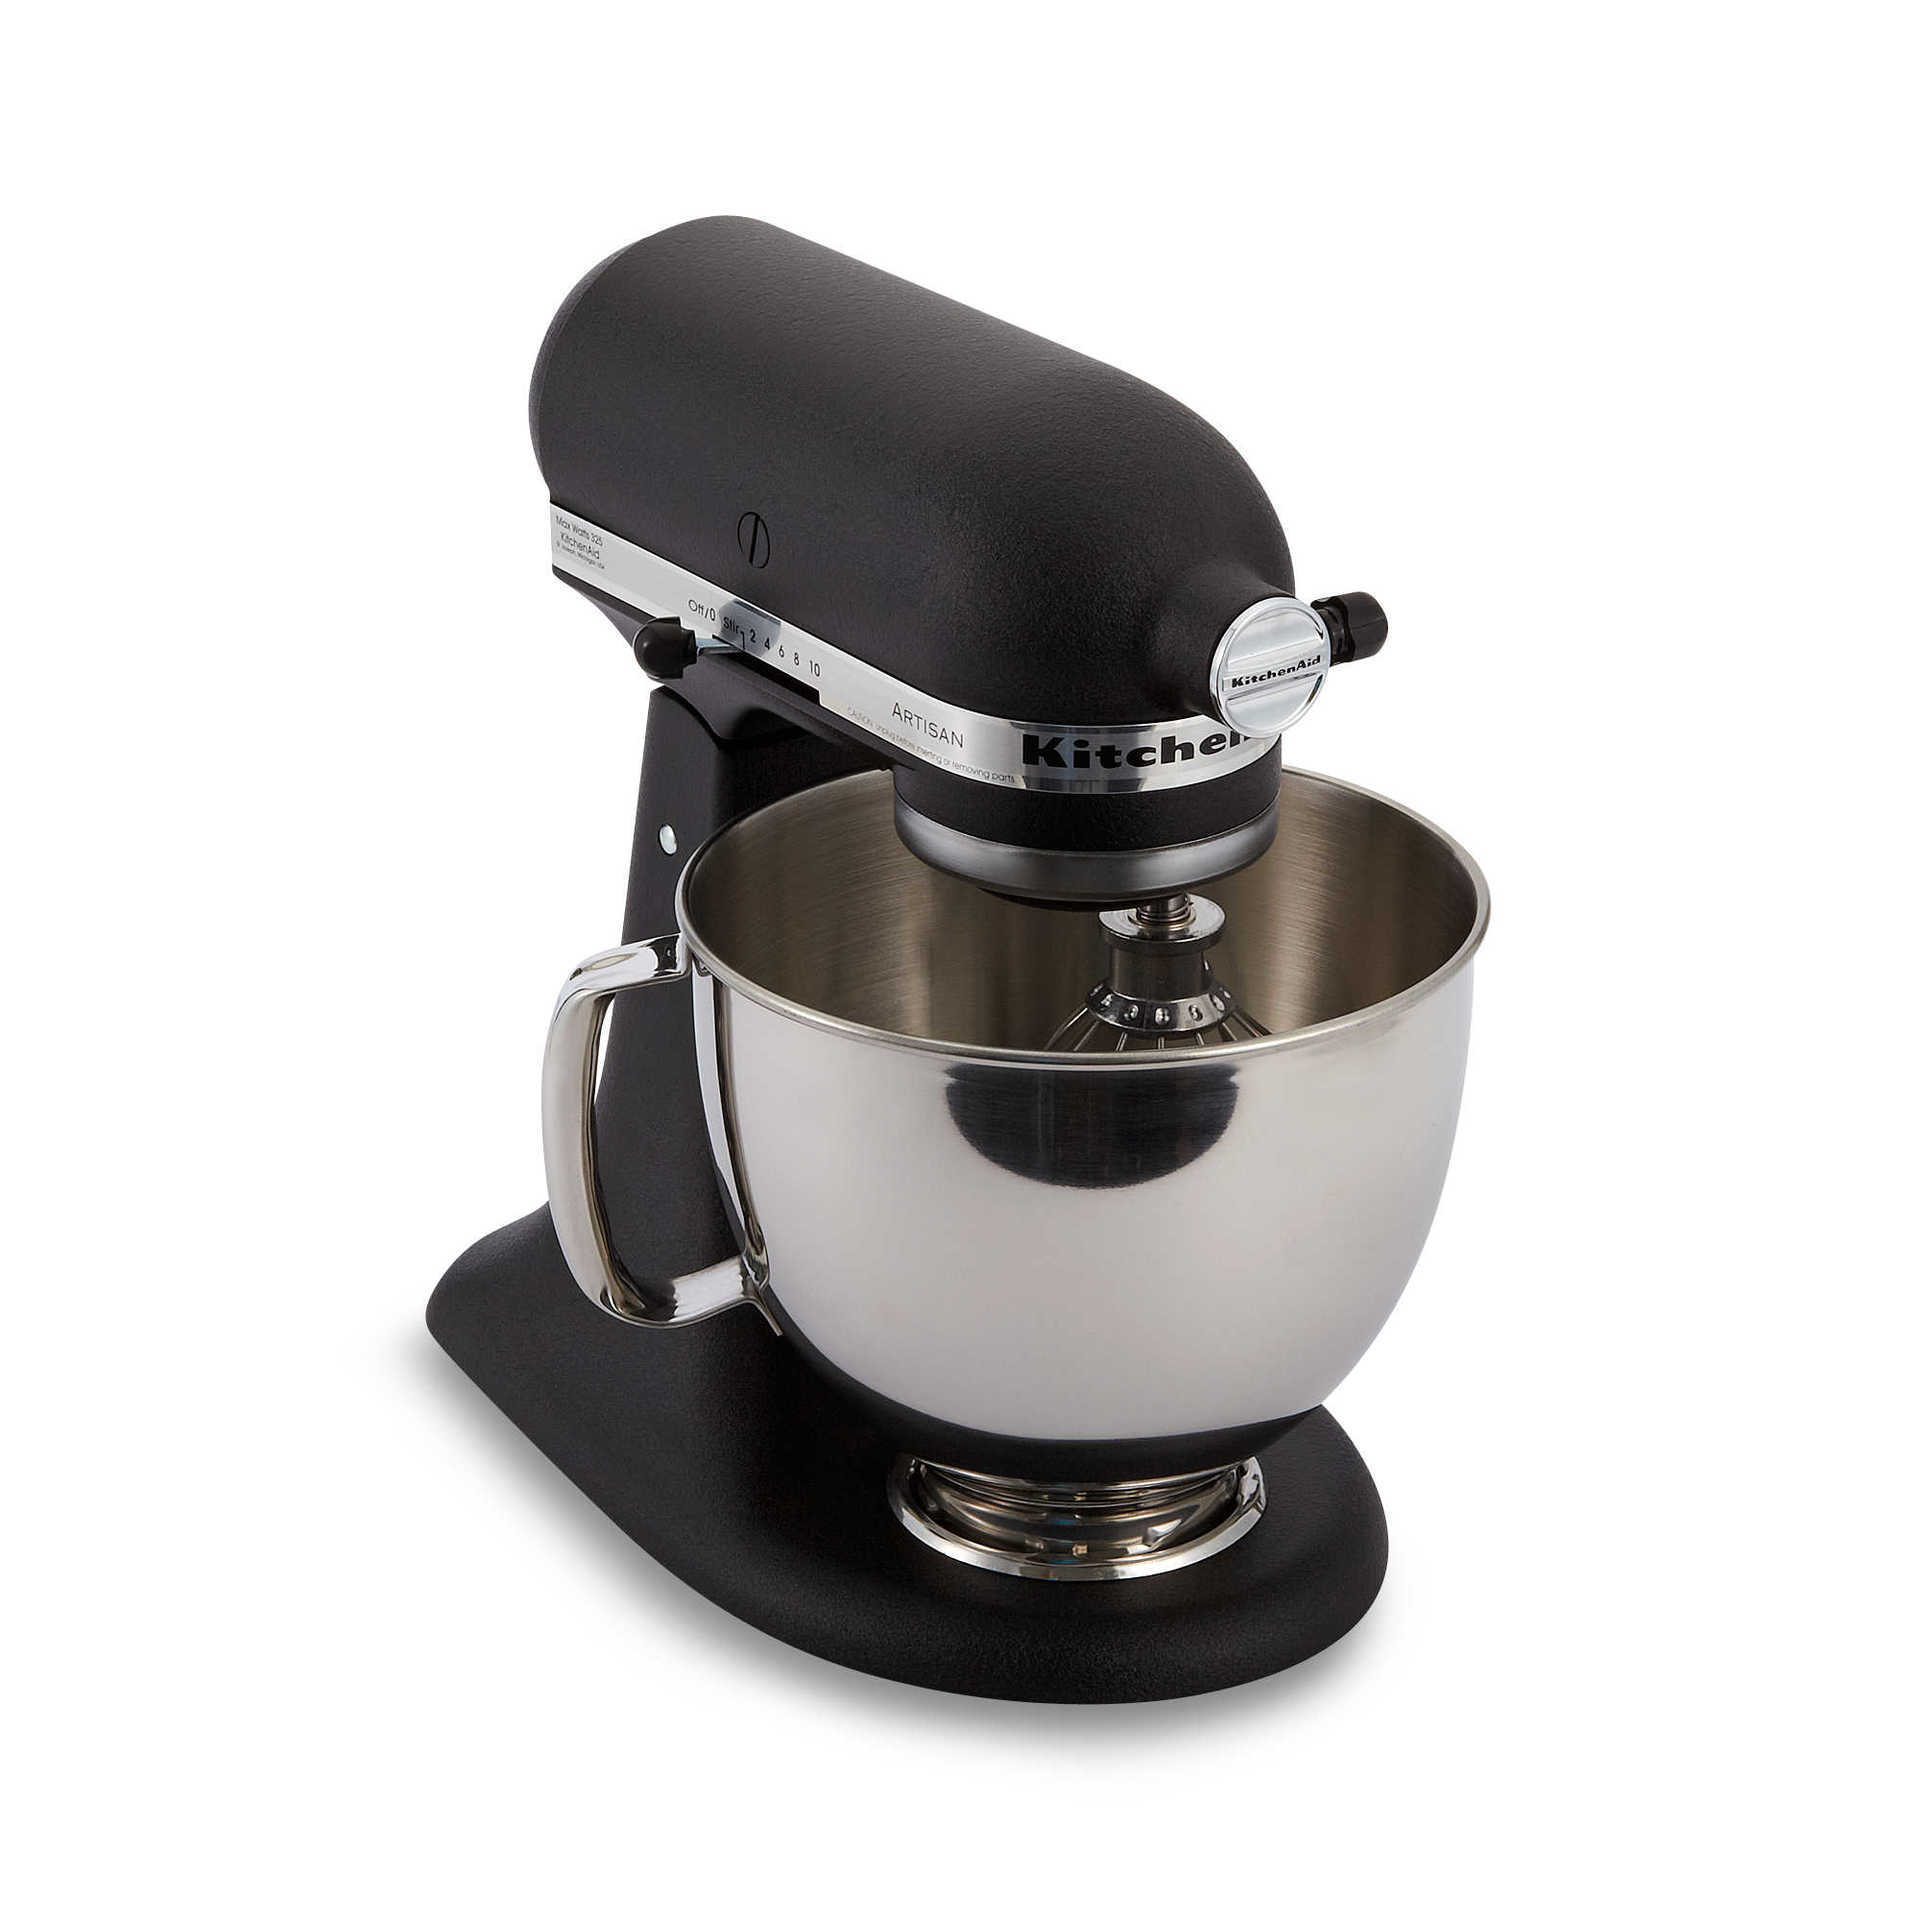 KitchenAid® Artisan® 5 qt. Stand Mixer in Imperial Black